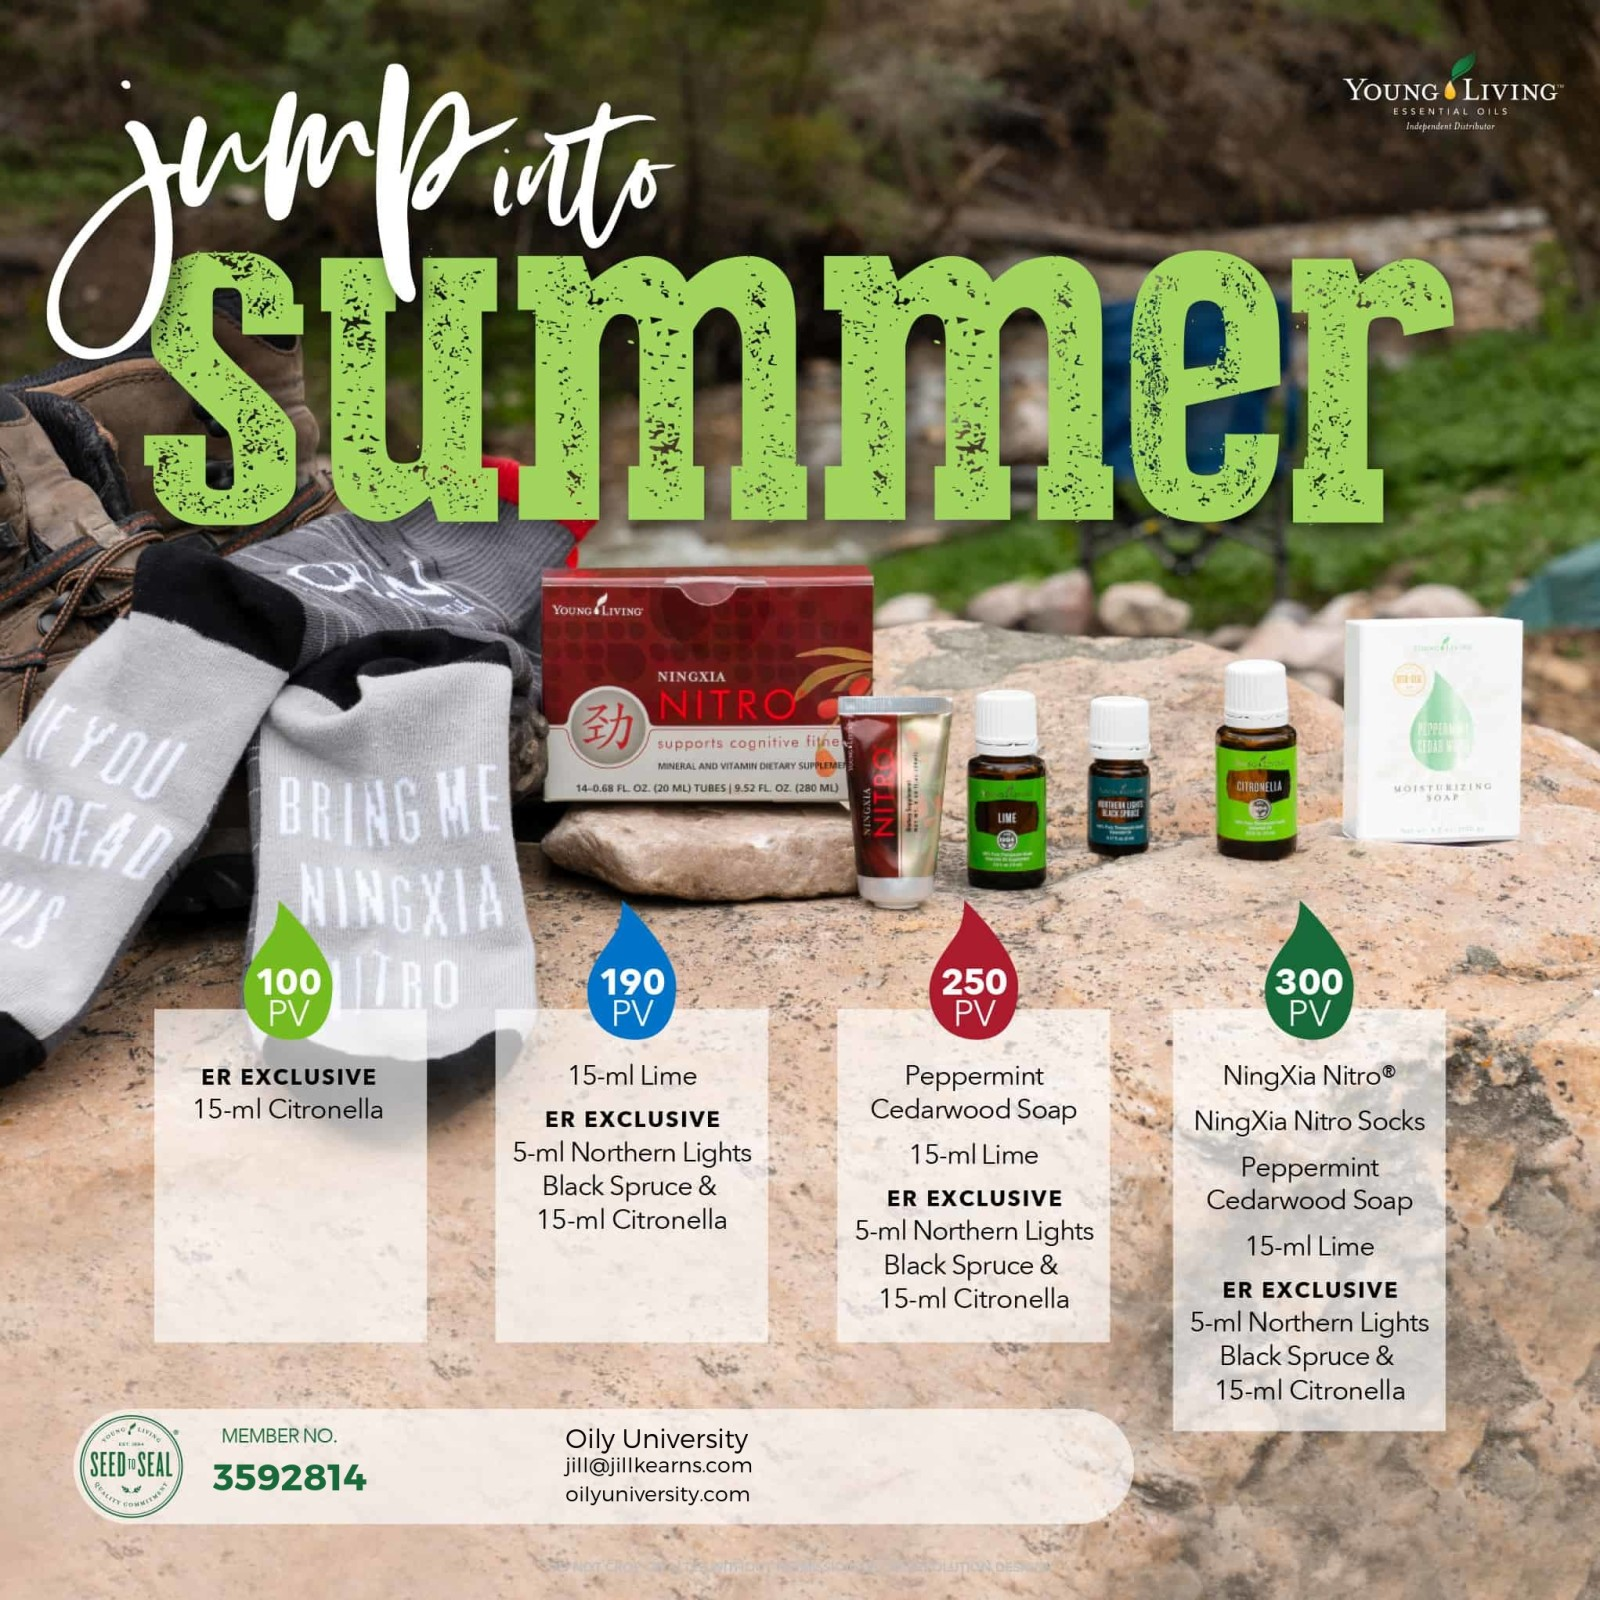 June promotions from Young Living are spot on perfect for Fathers Day!